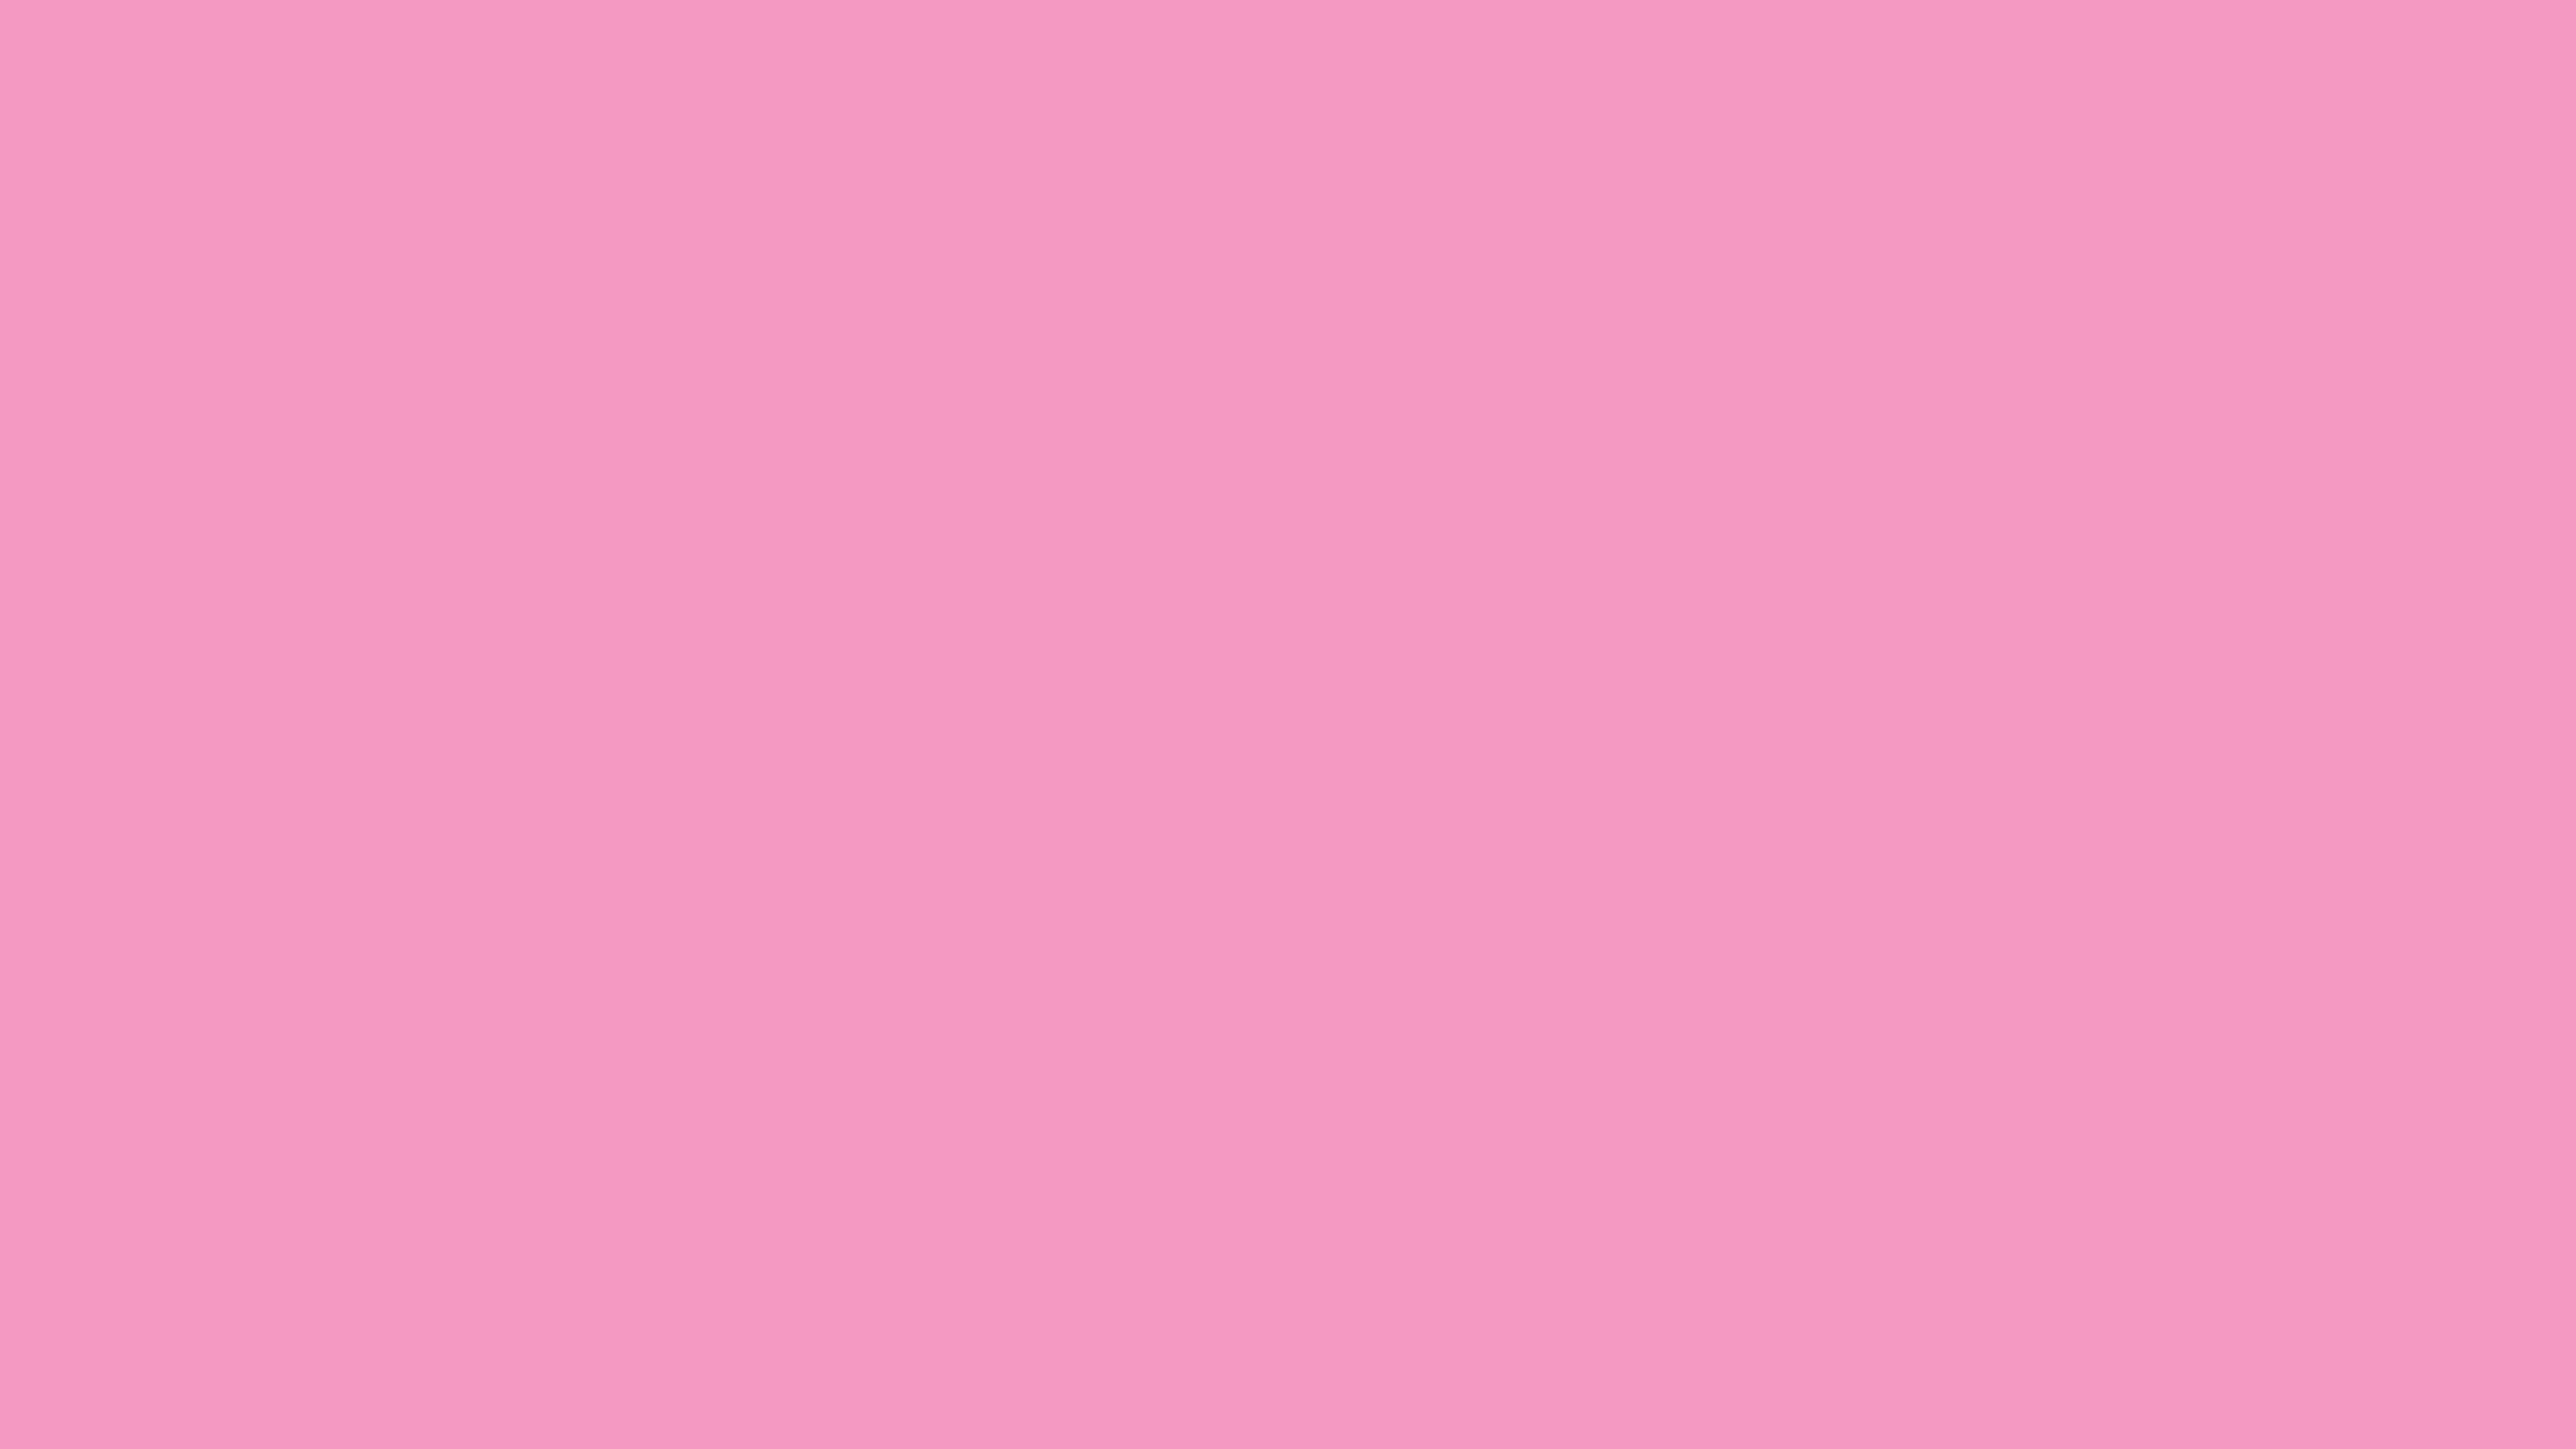 5120x2880 Pastel Magenta Solid Color Background